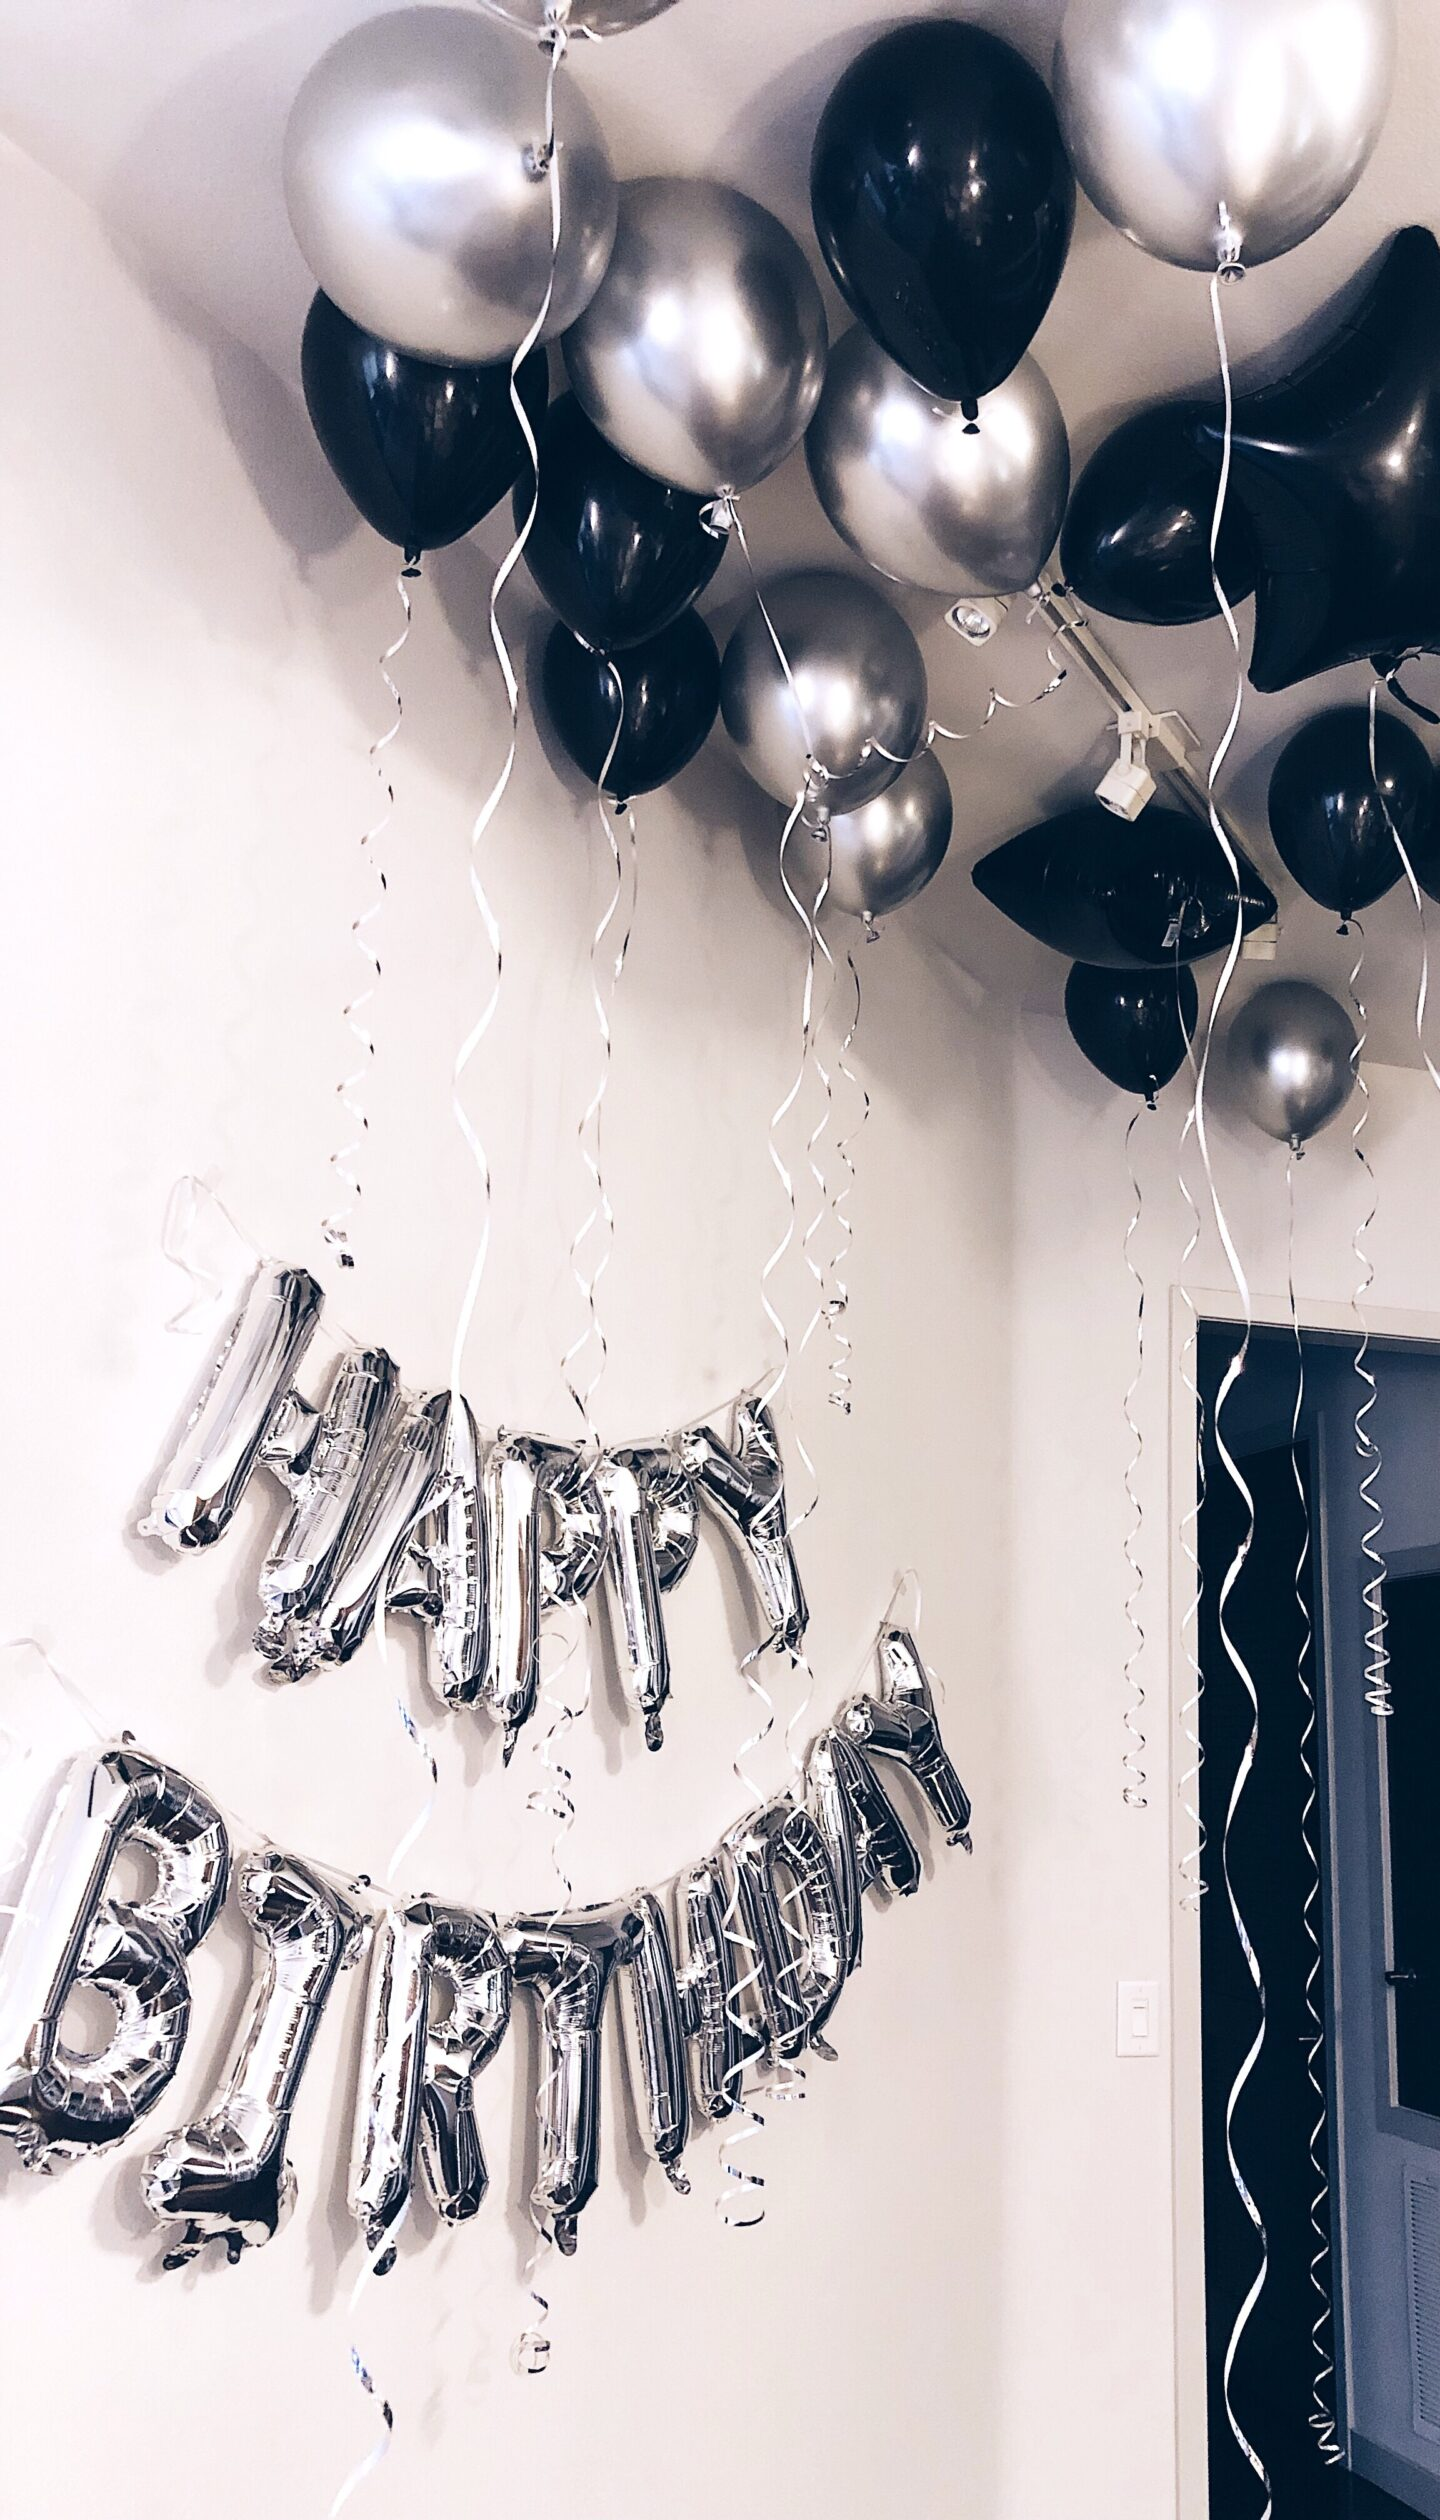 Planning a 21st birthday party is SO MUCH fun! Although some might not approve of all of these 21st birthday ideas, they are hilarious and a fun way to celebrate your day! #21stbirthday #21stbirthday #21stbirthdaydecorations #21stbirthdayideas #21stbirthdayideasfordaughter